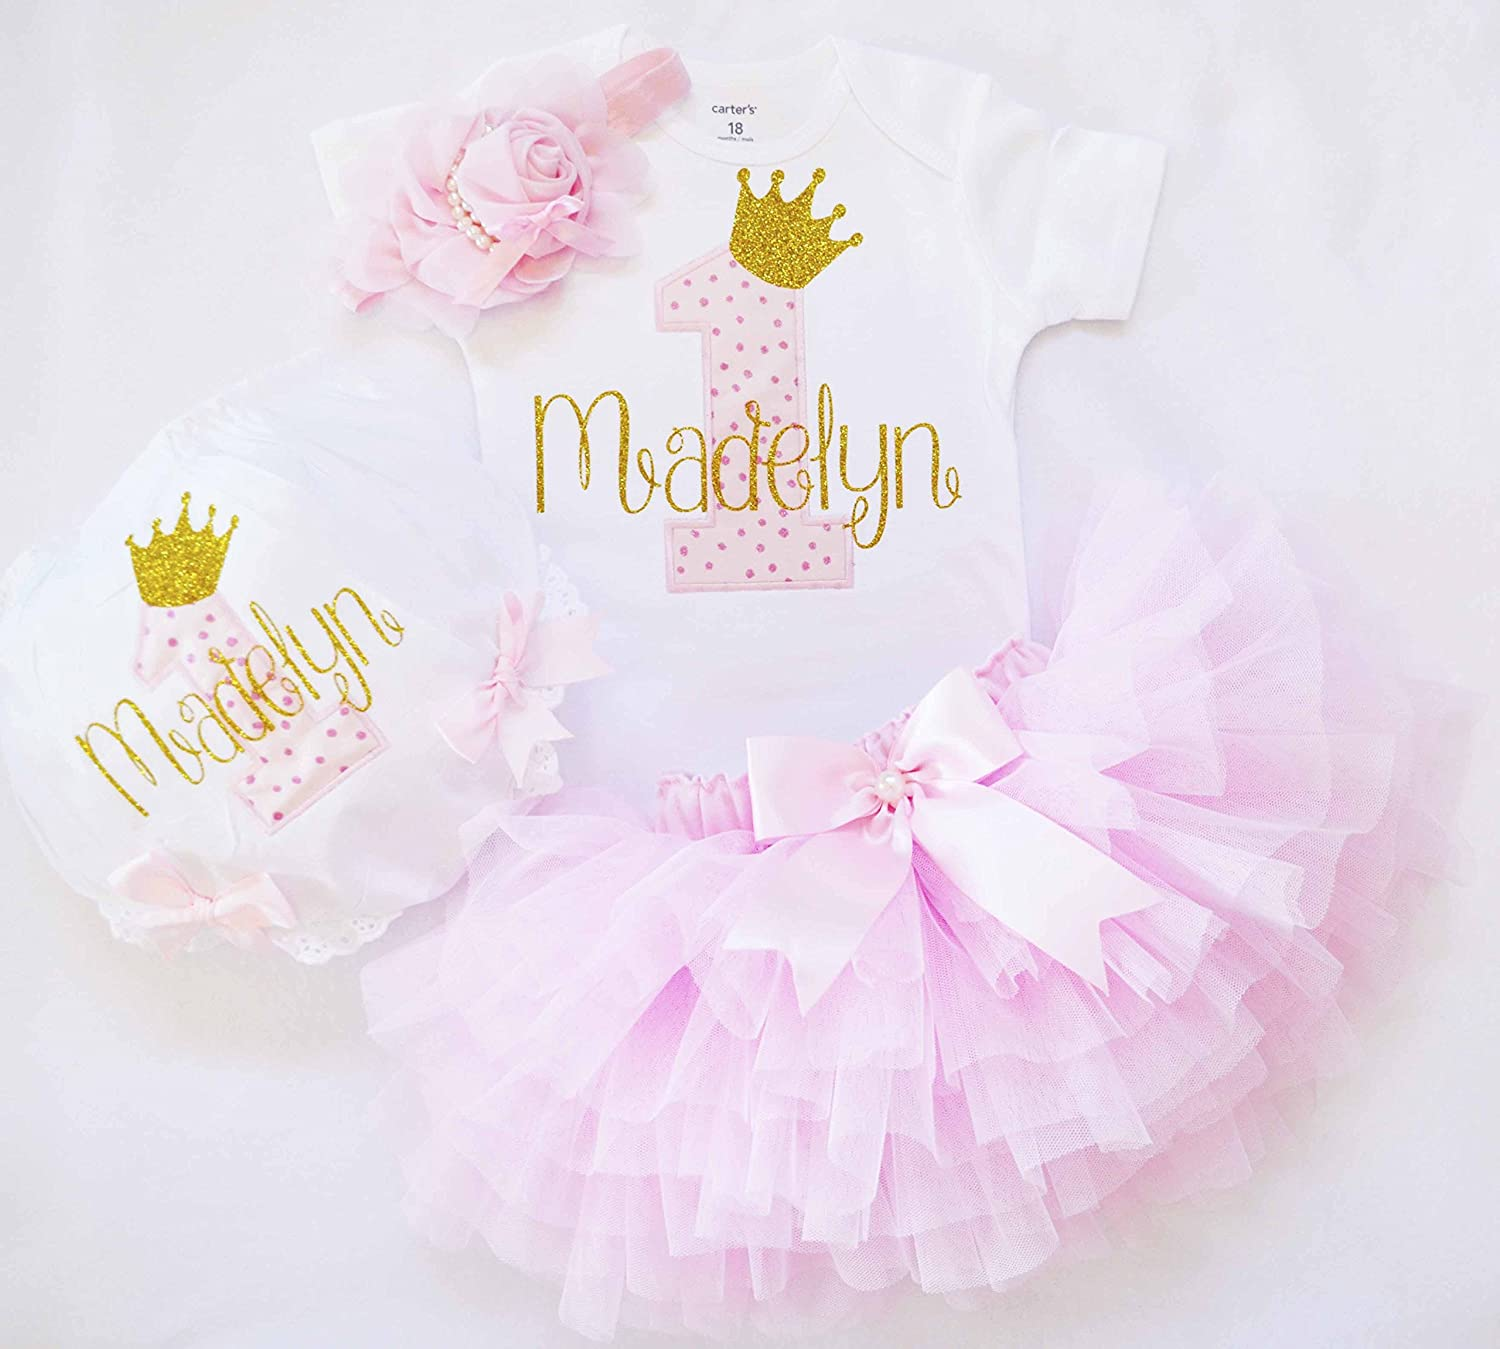 first birthday outfit for baby girl in pink and gold,customized 1st birthday shirt,pink ruffle tutu,baby girl diaper cover,cake smash outfit